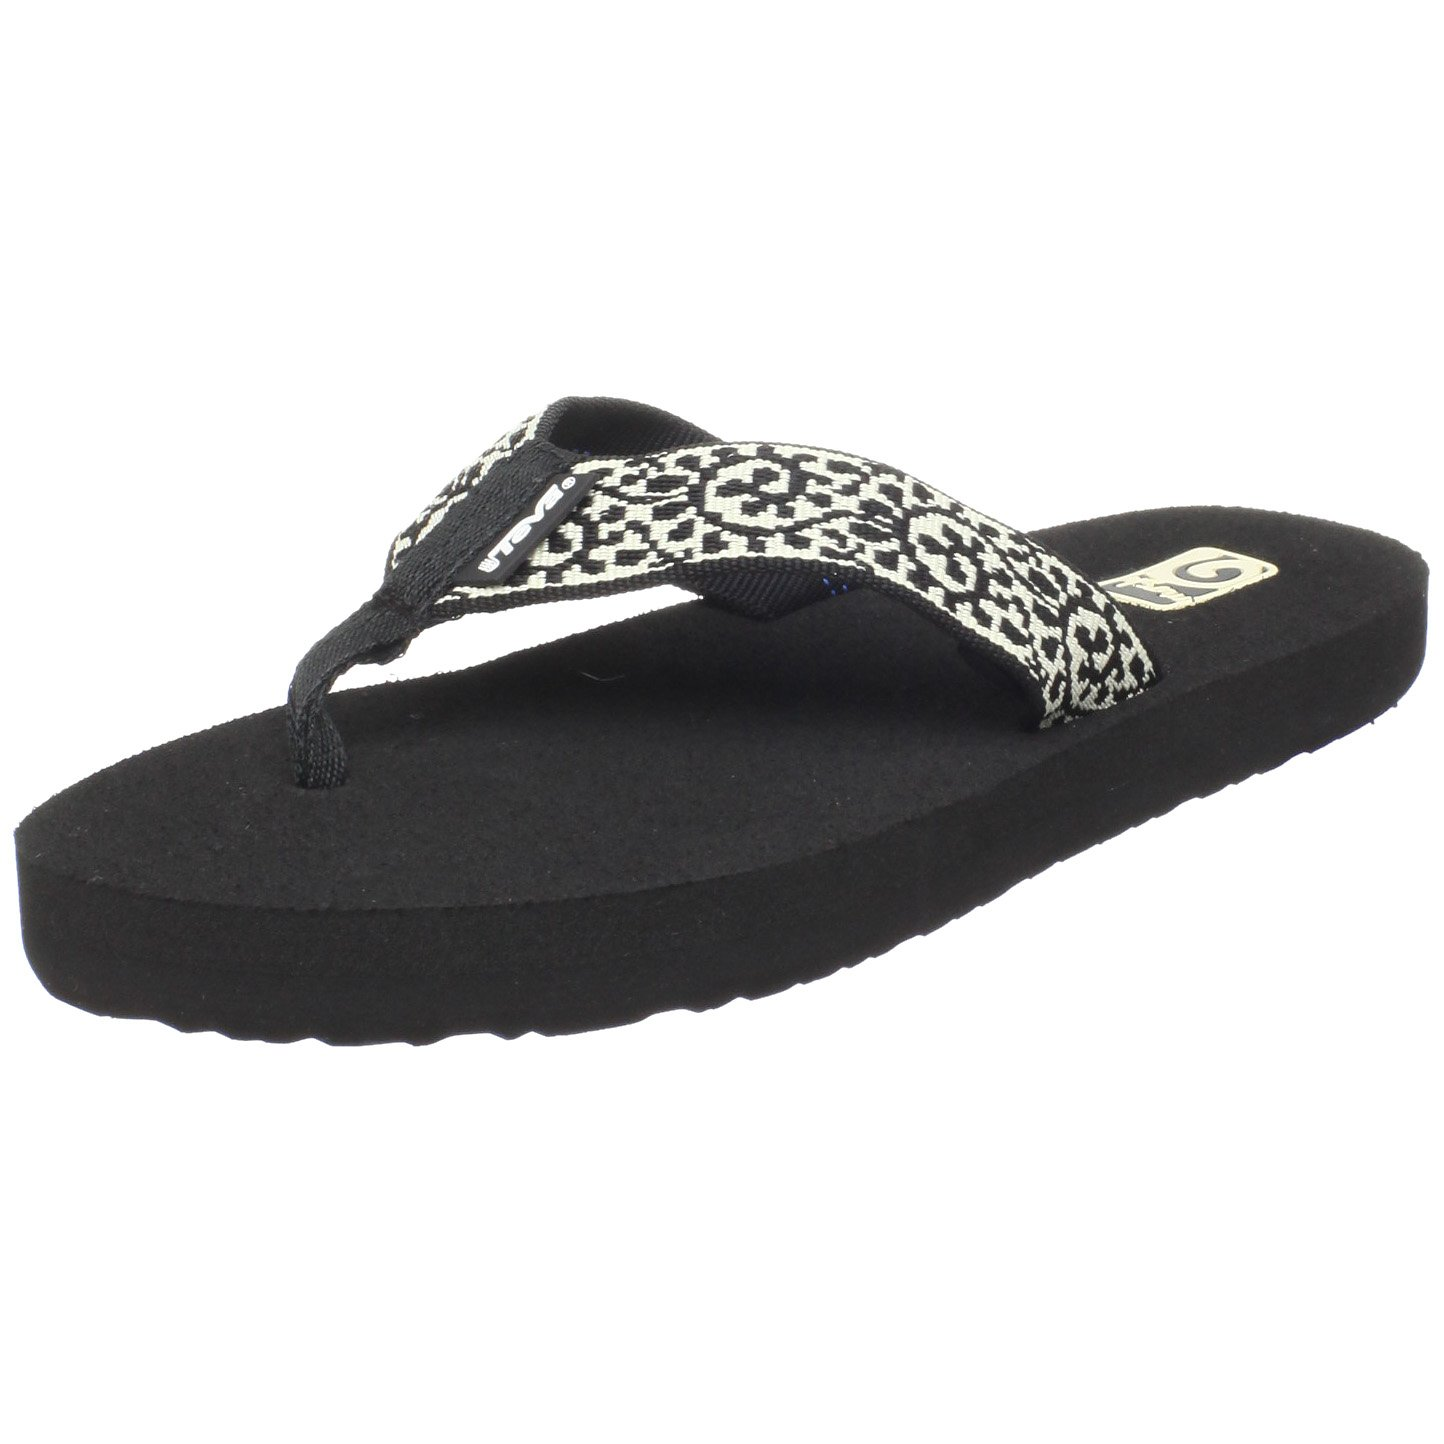 Teva Women's Mush II Flip-Flop B003TU151Q 11 B(M) US|Vineyard Skip Black and Cream